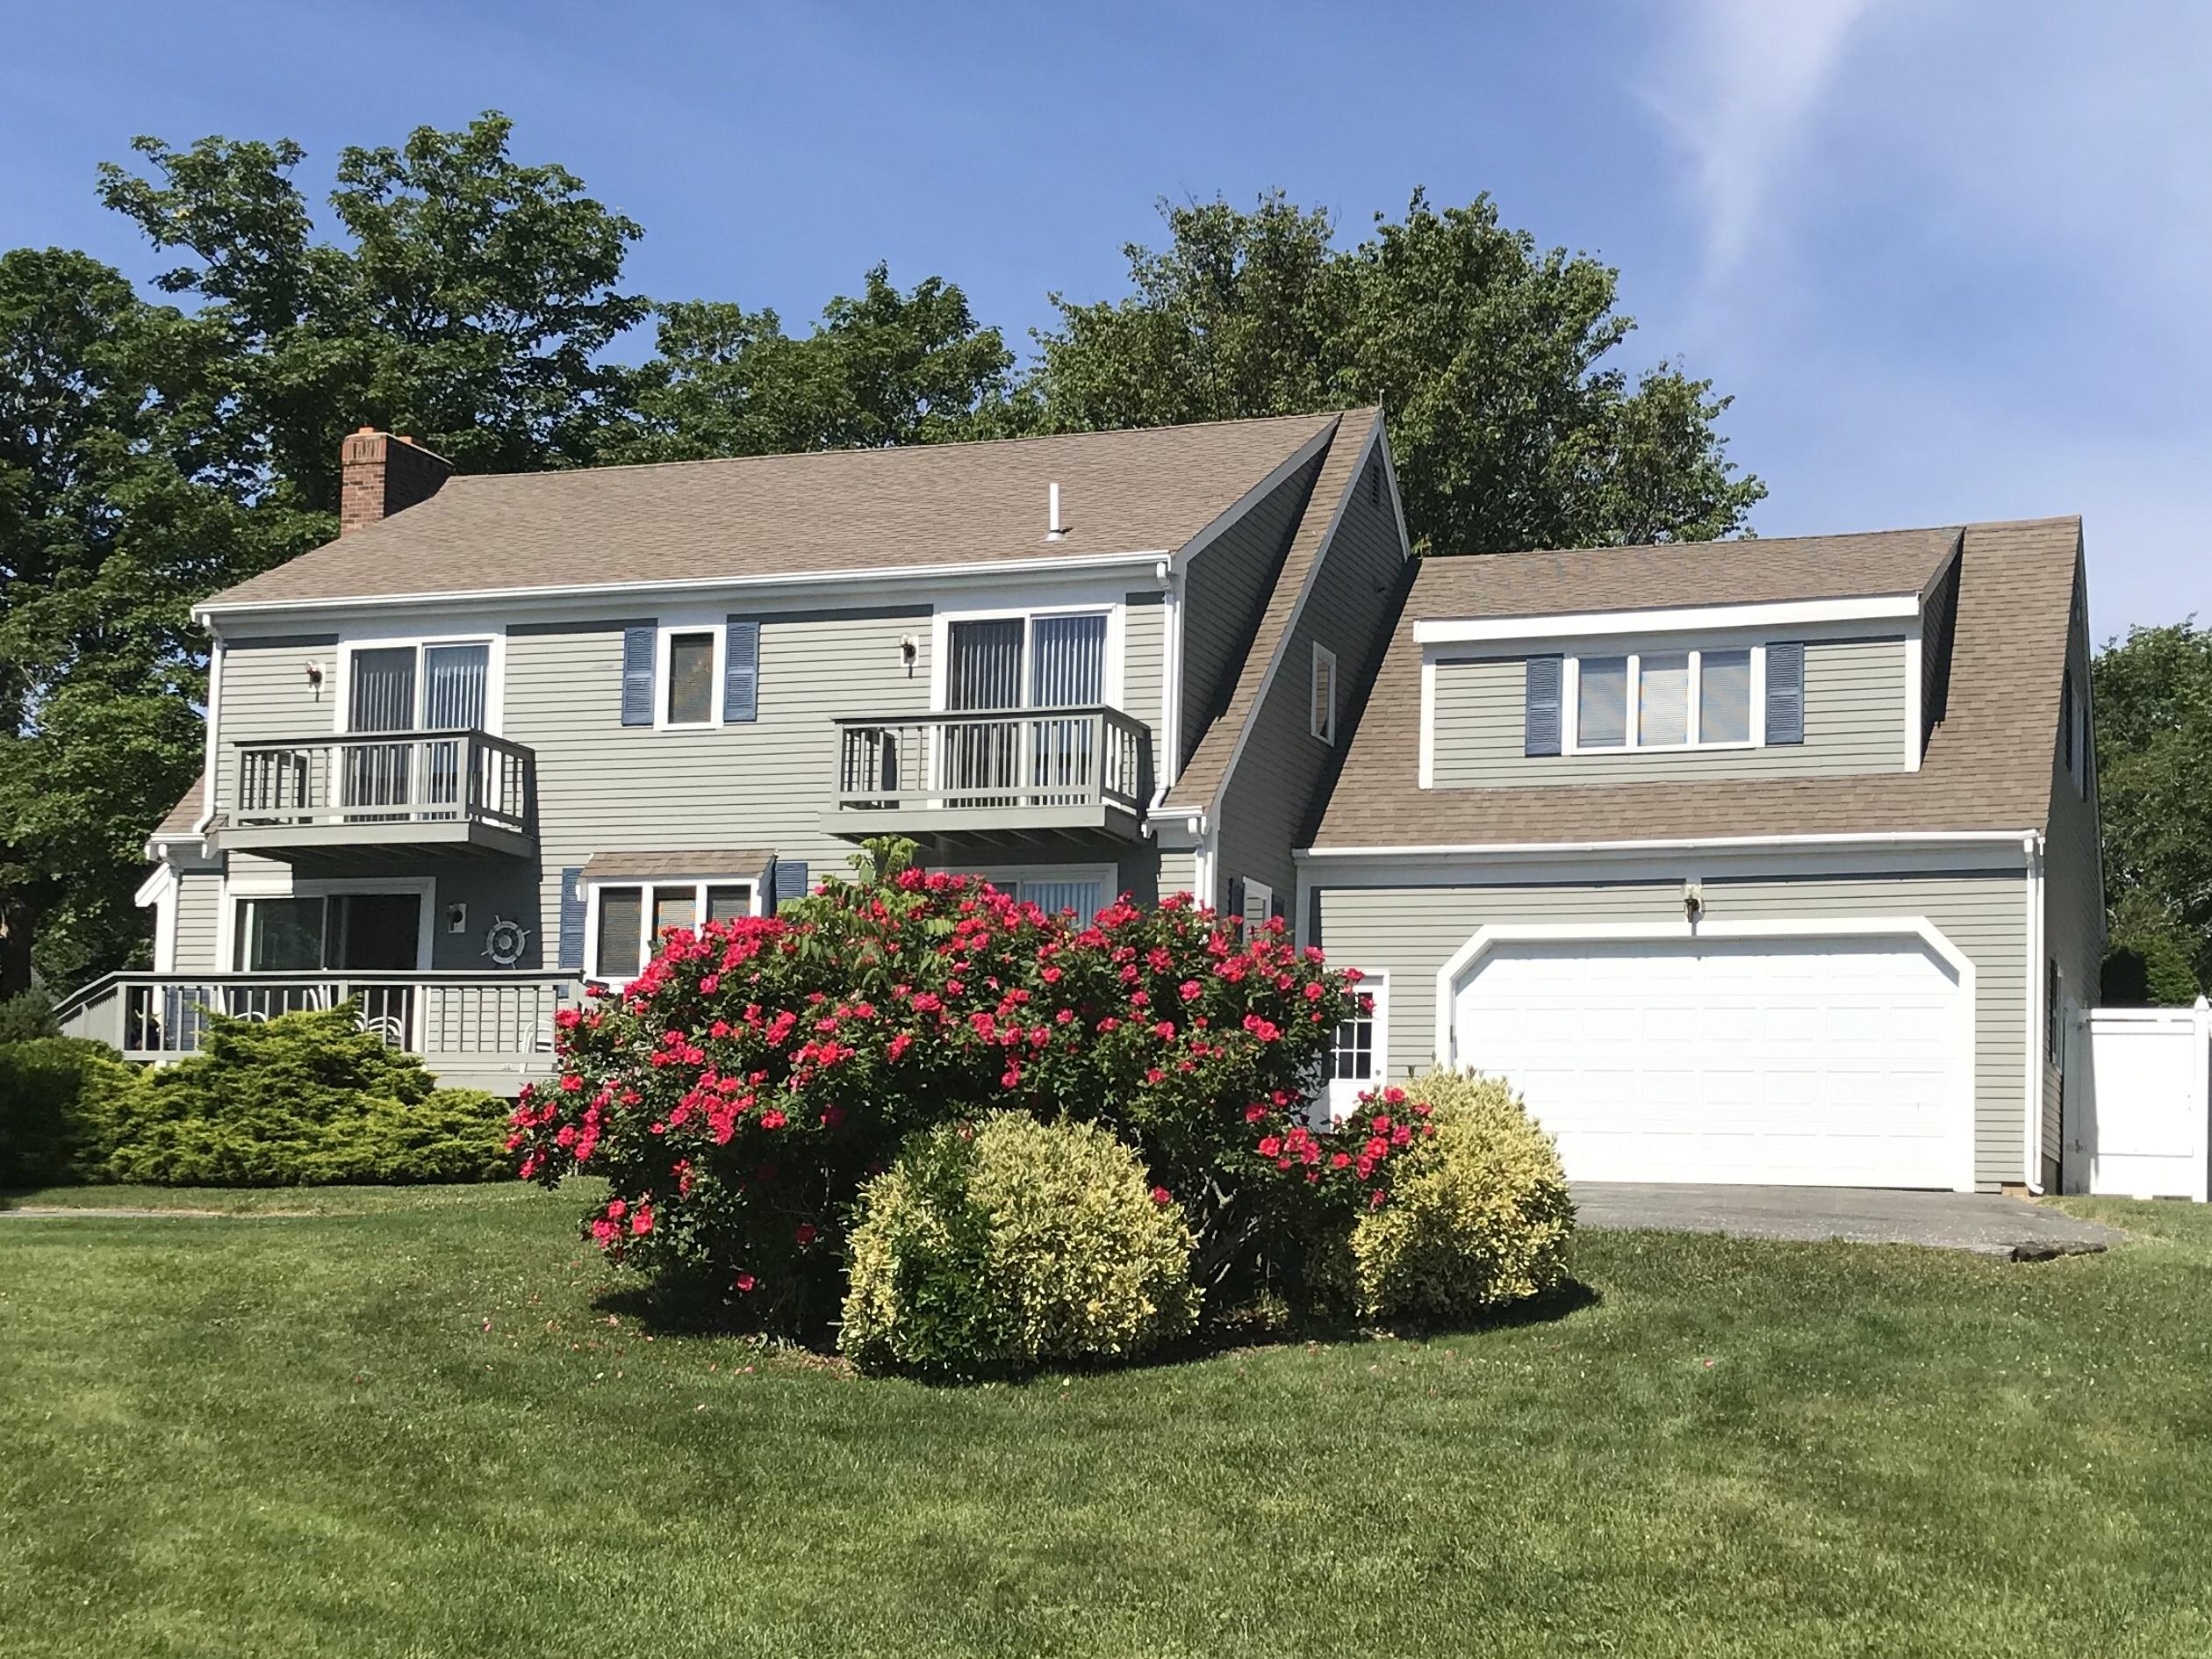 94 Old State Highway, Eastham MA, 02642 details